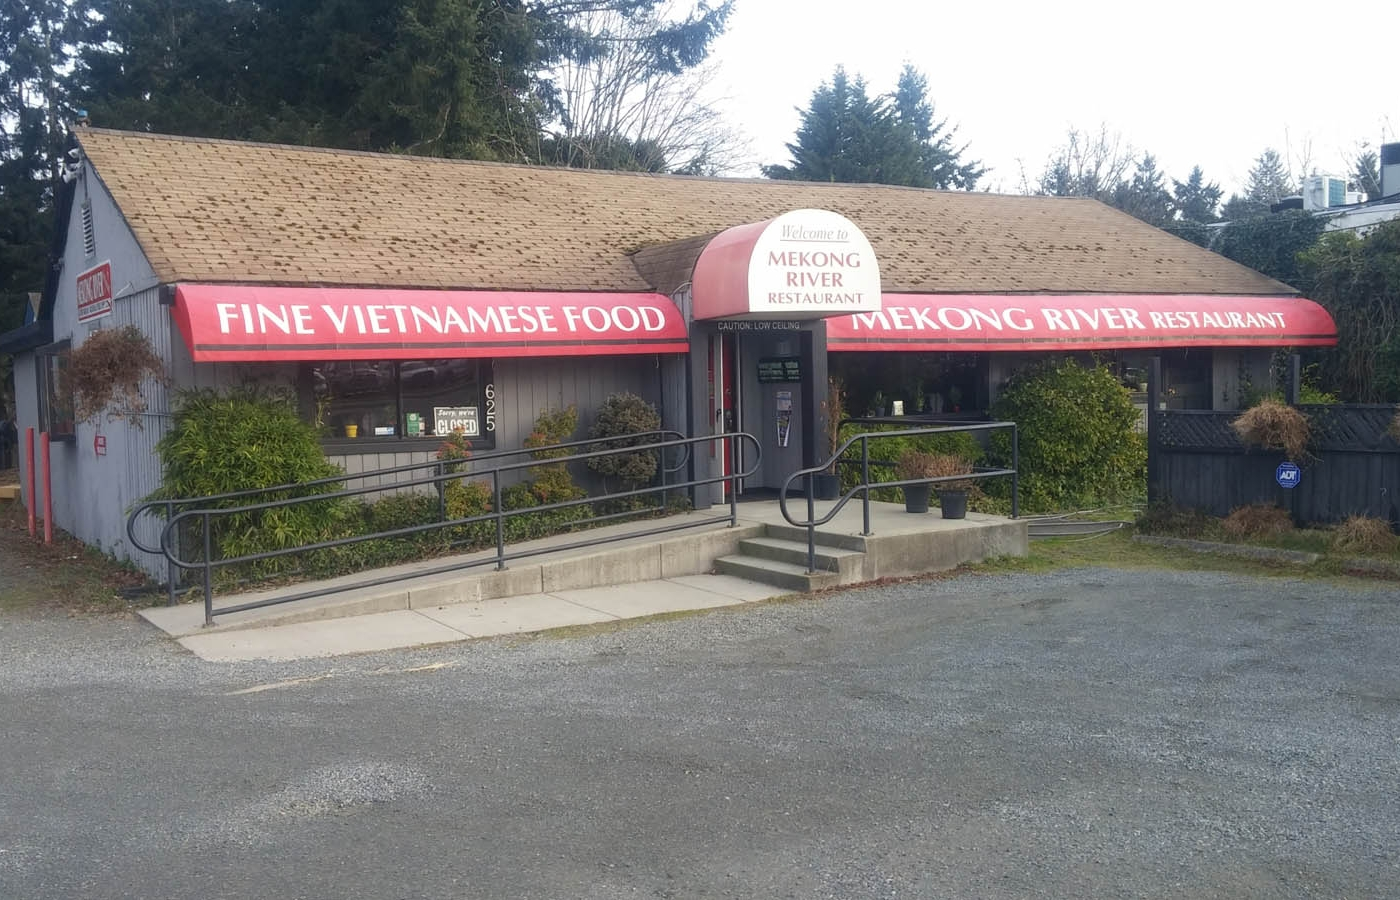 Mekong River Restaurant is a business for sale in BC.